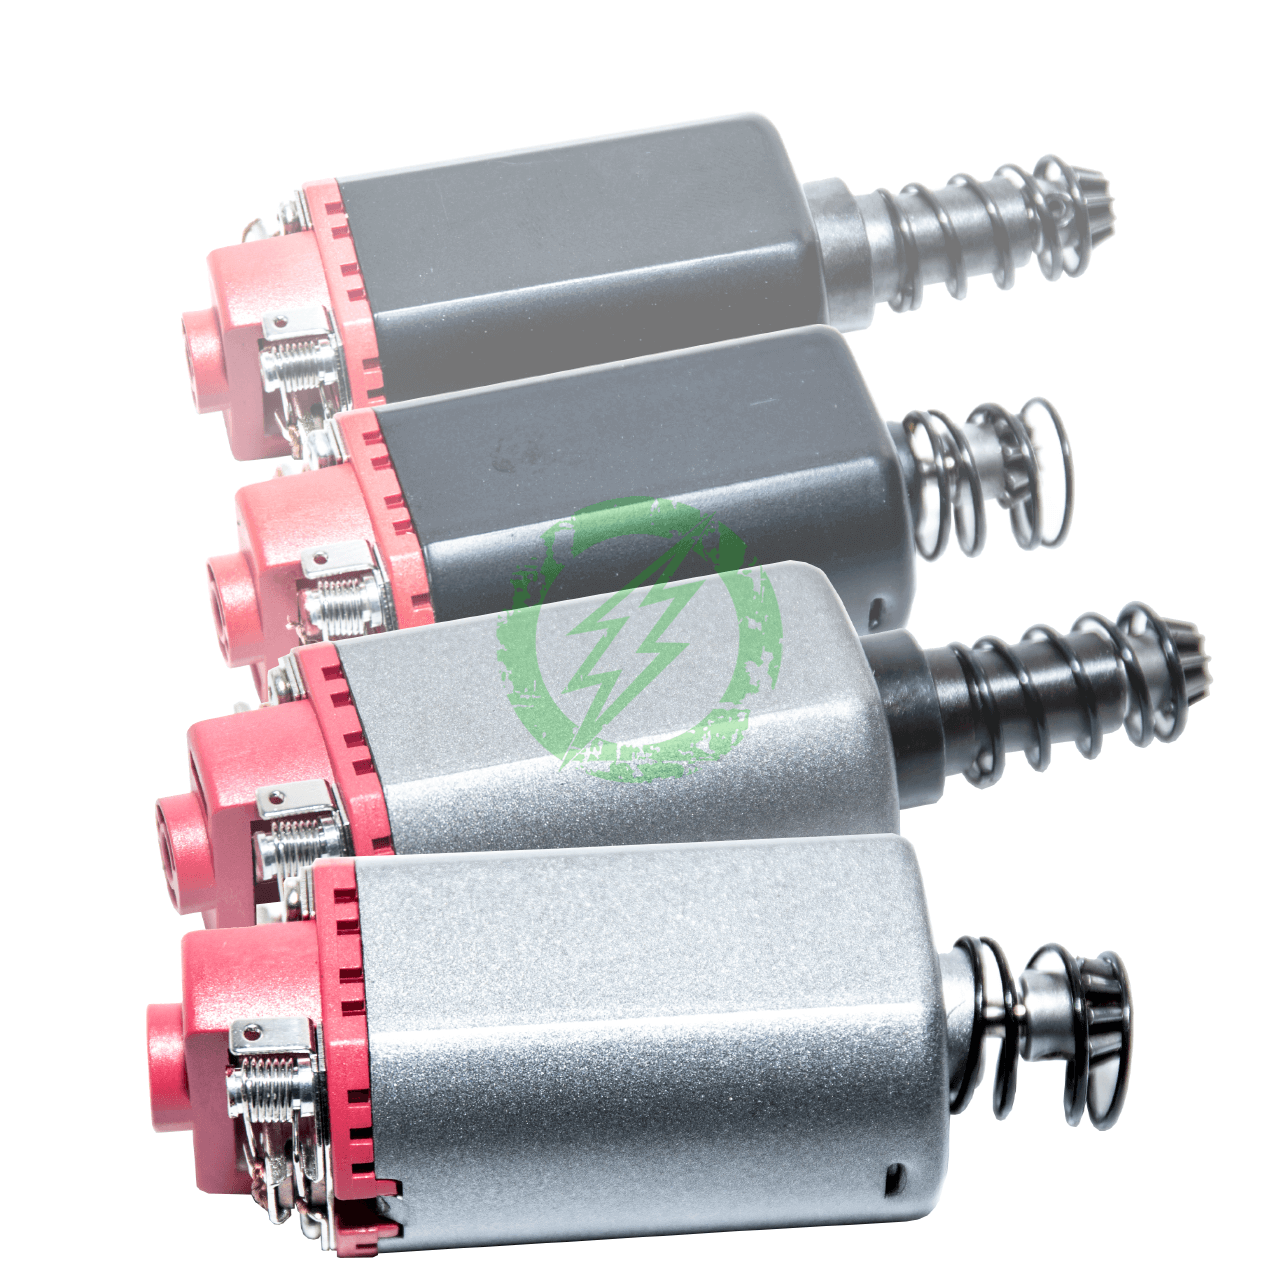 ZCI High Speed Motors | V2, V3 | Short & Long Type